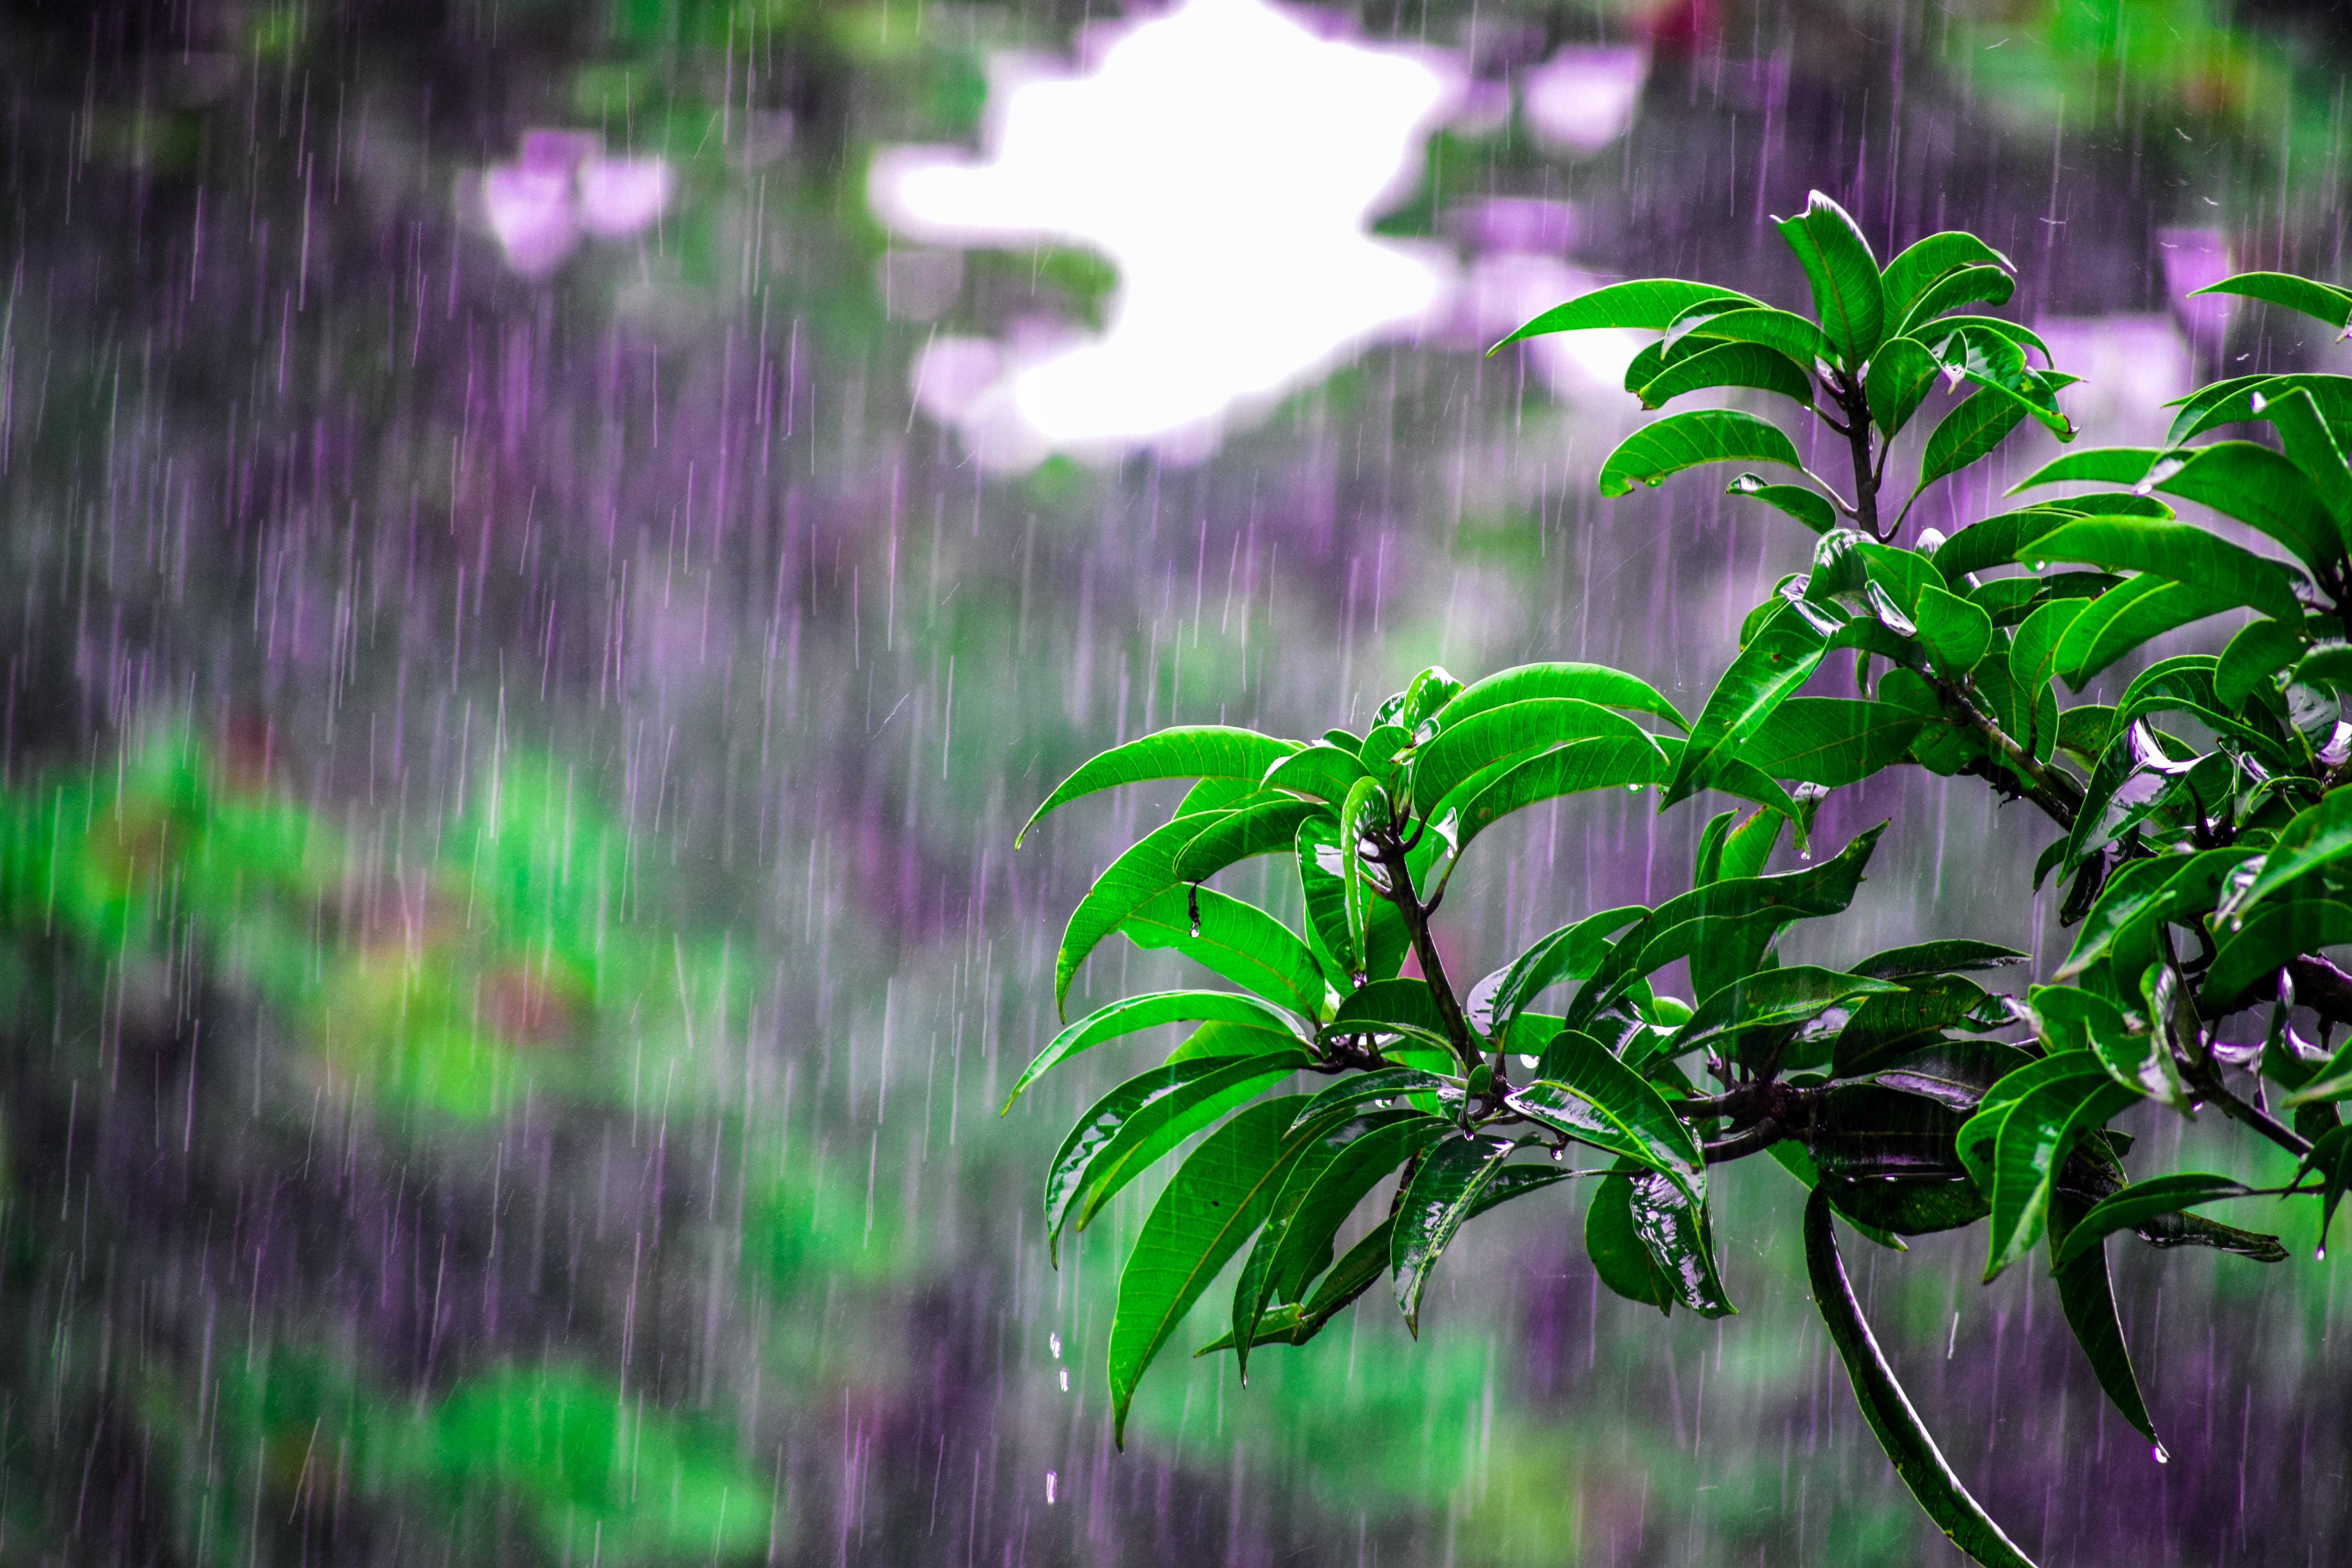 Selective Focus Photo of Obalte Green-leafed Plants during Rain